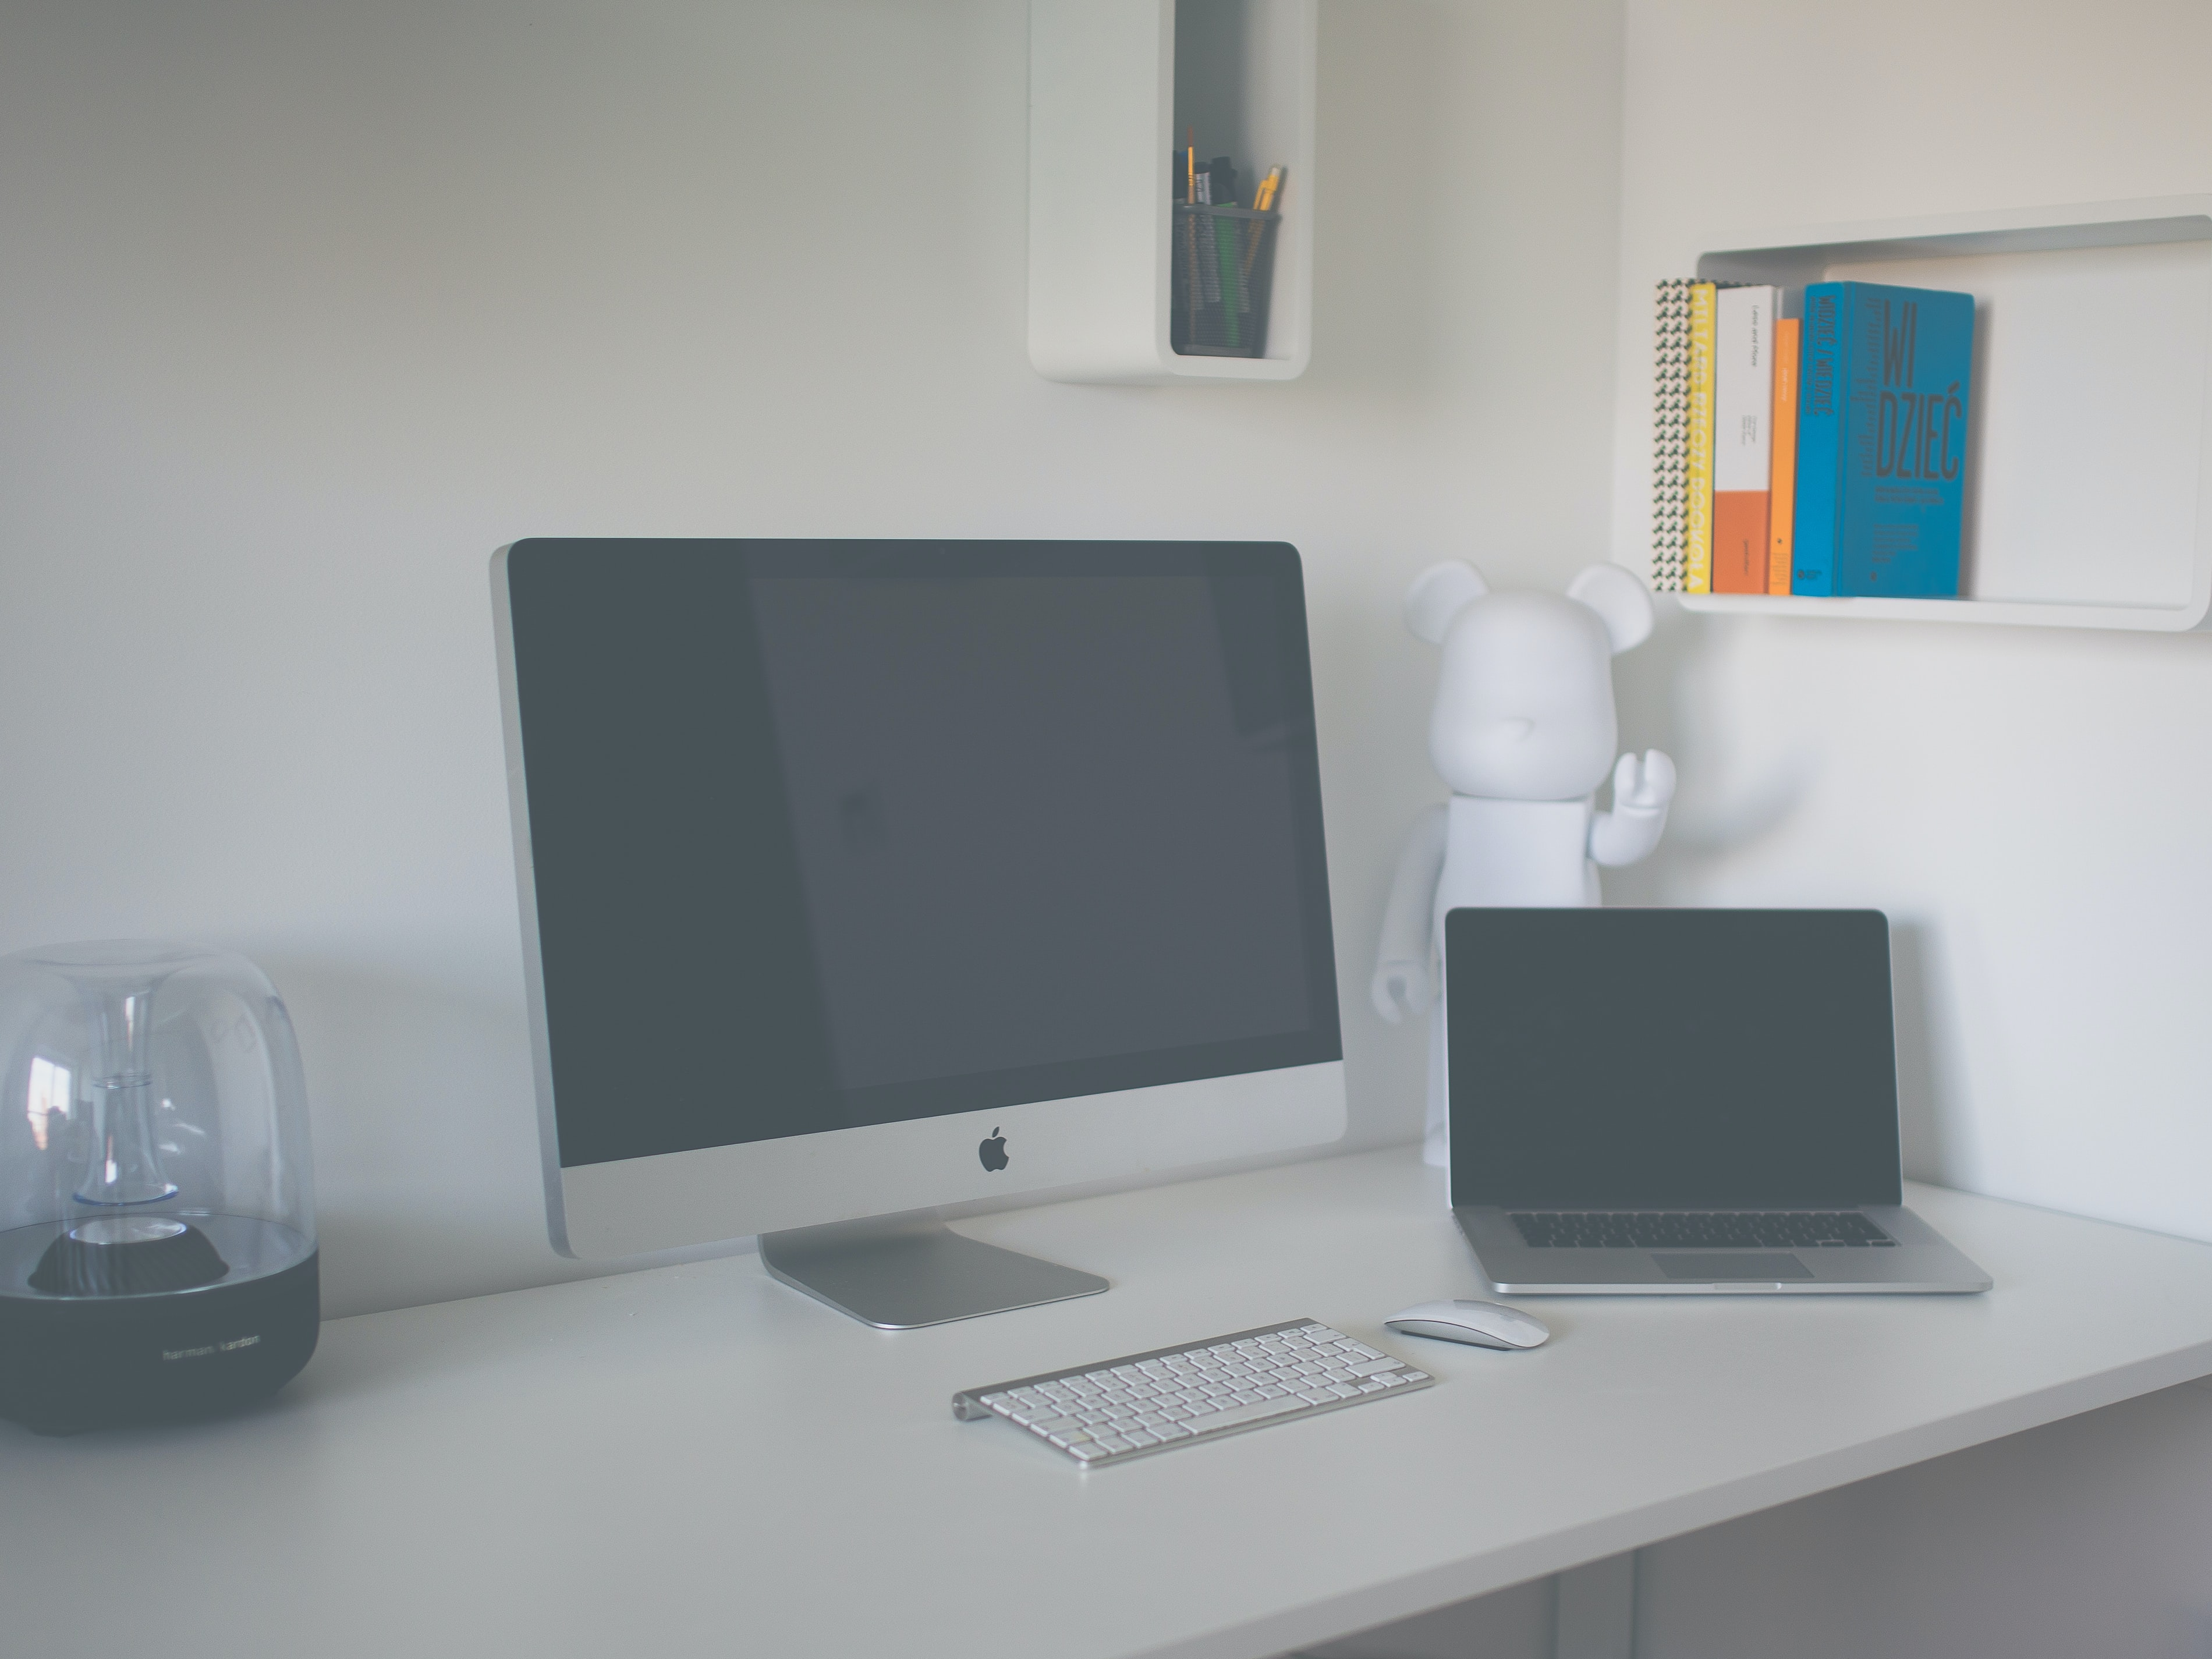 A clean white workspace with an iMac, a Macbook and a bookshelf